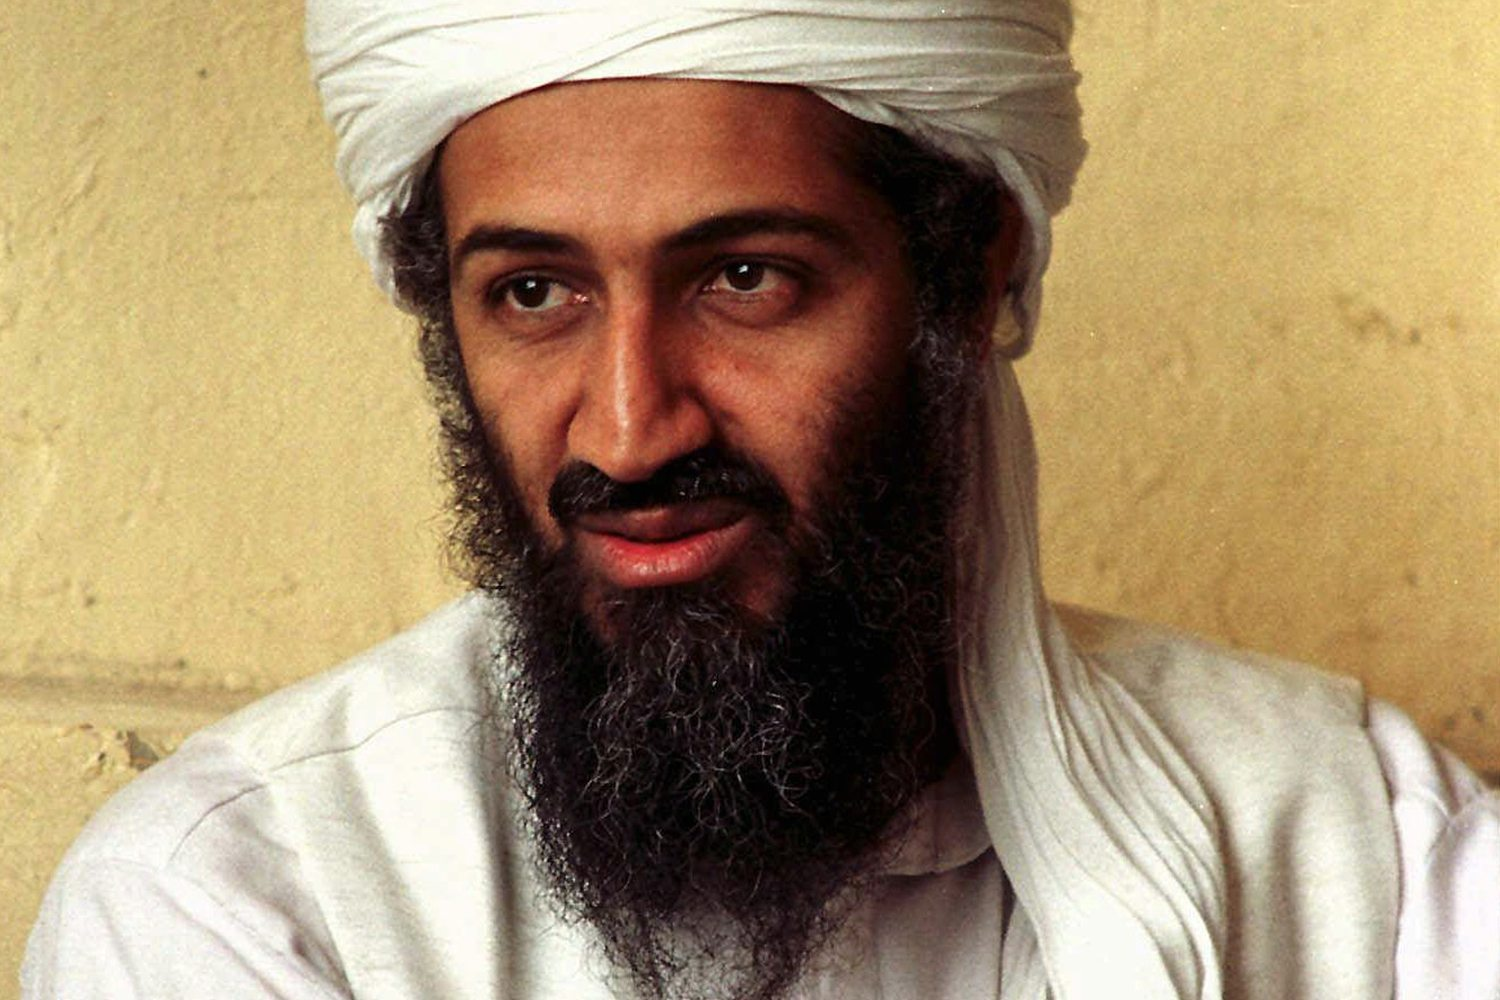 Osama bin Laden, April 1998, Afghanistan (AP)